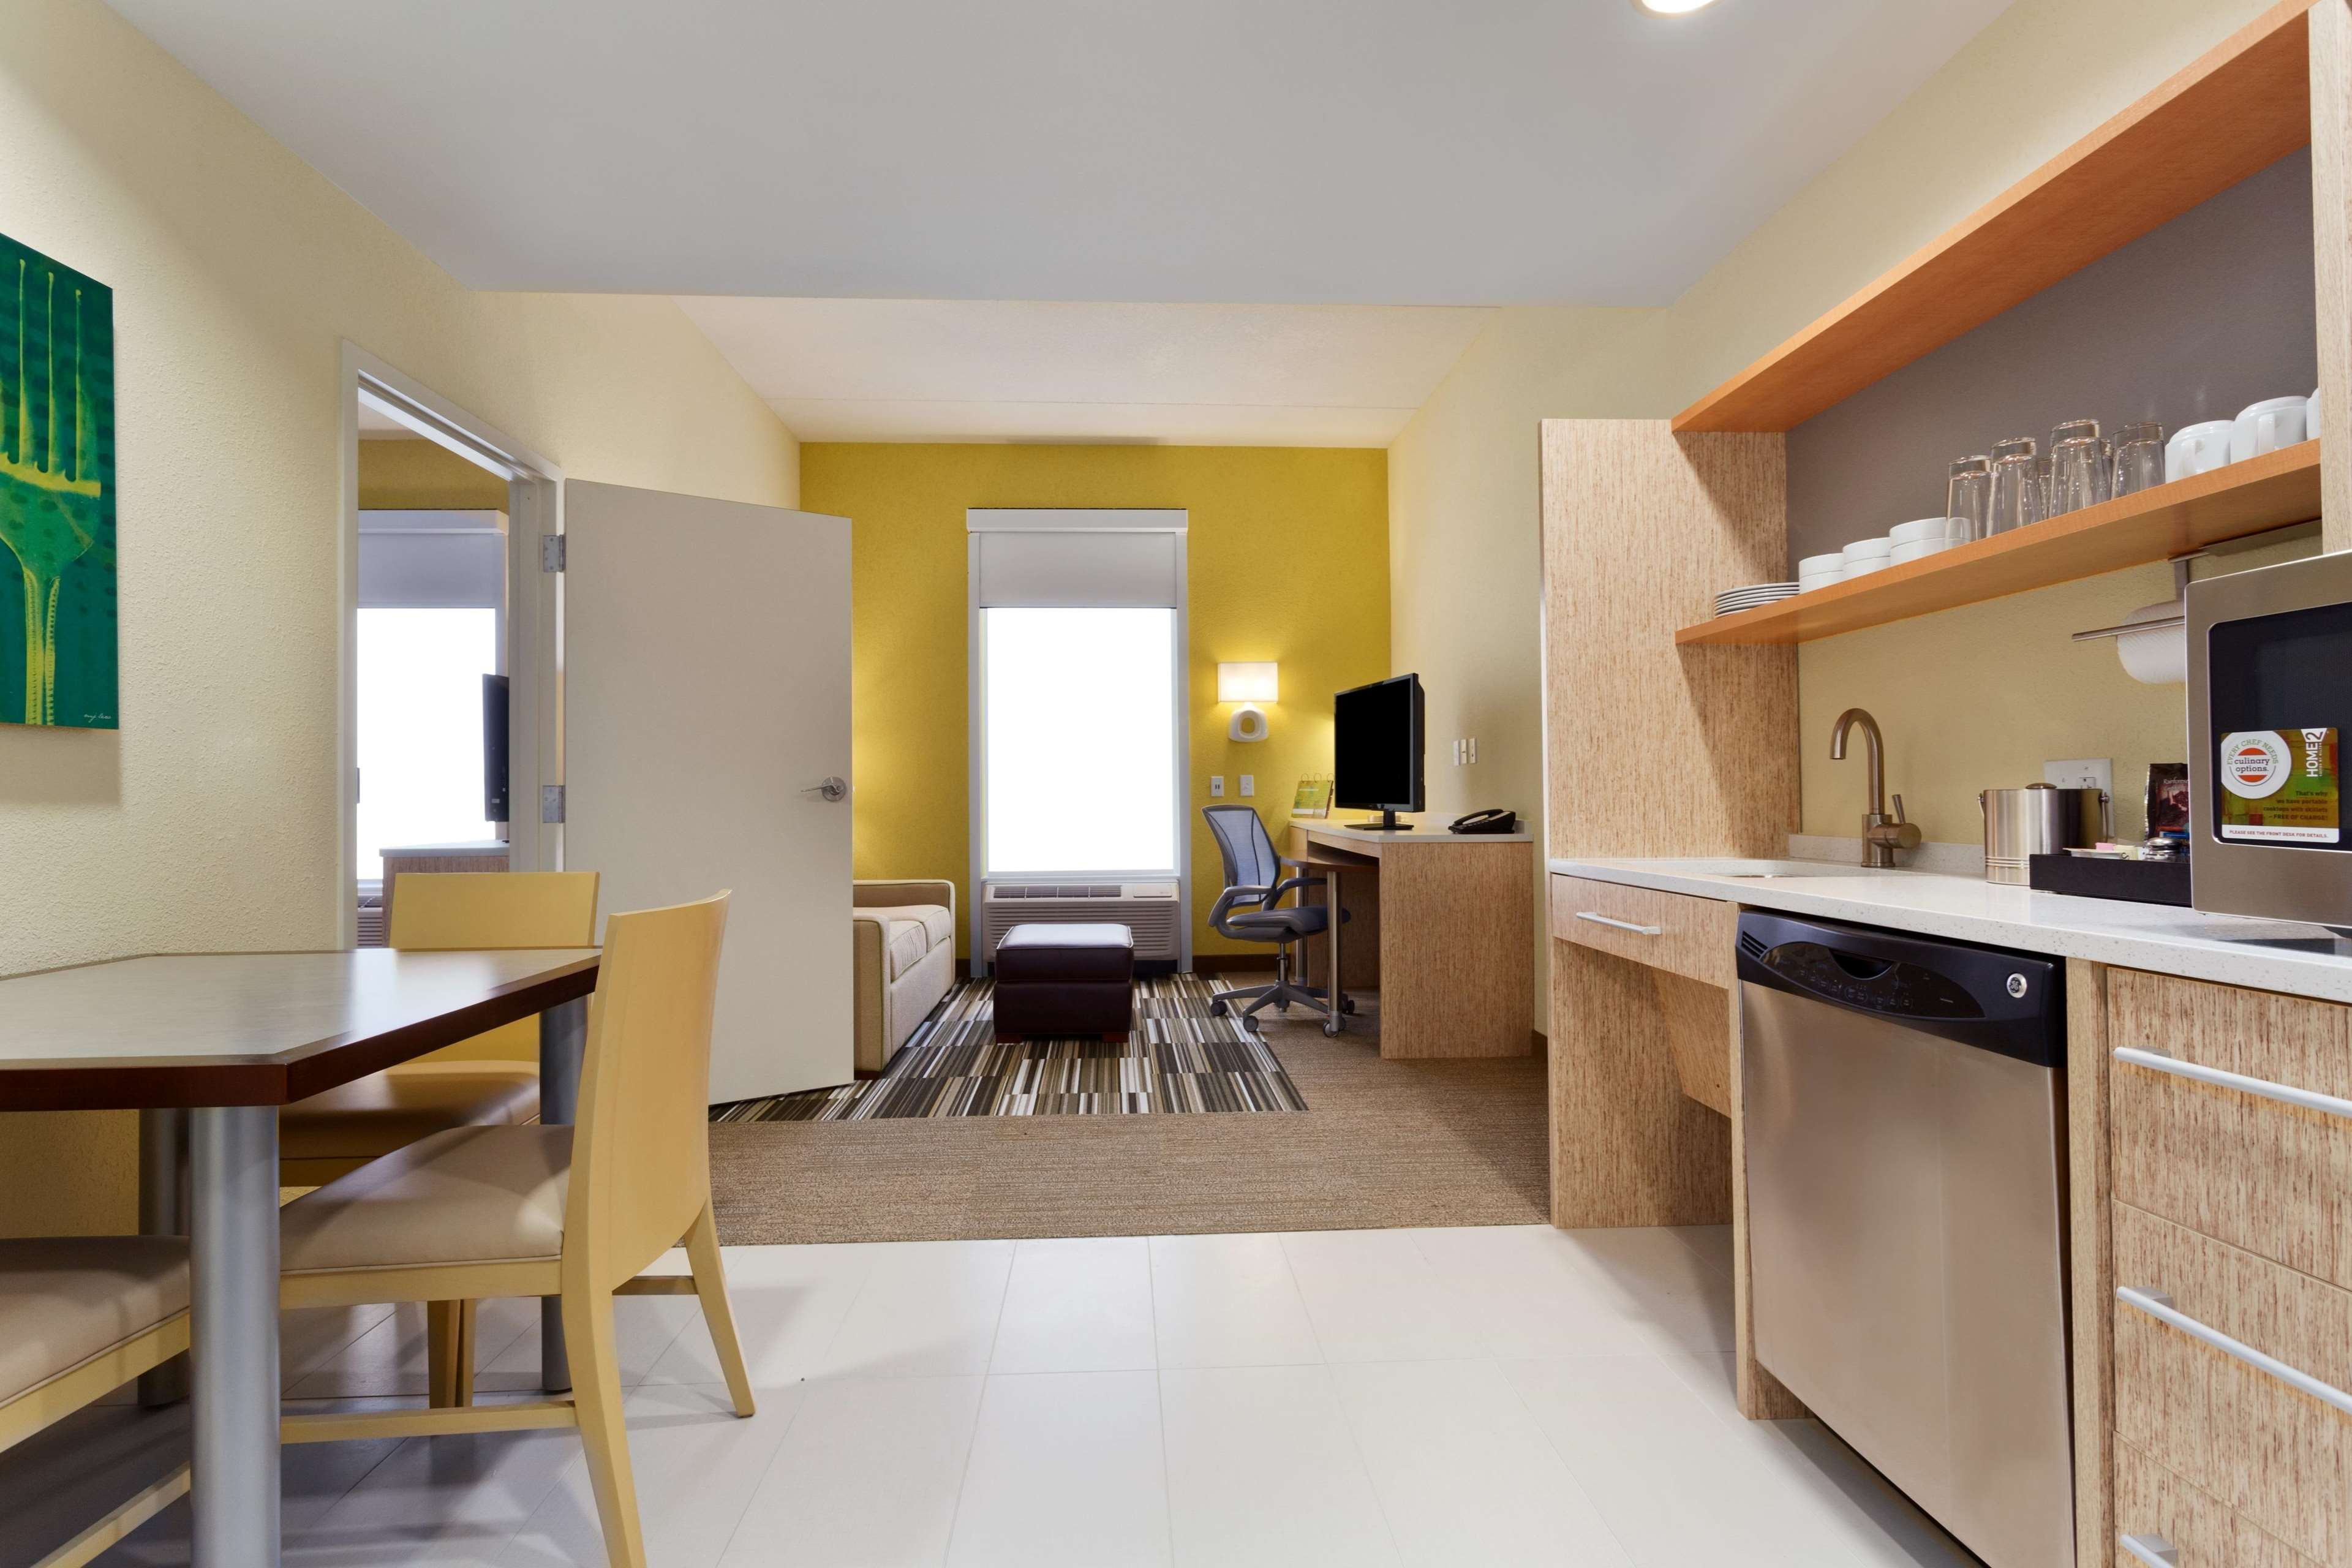 Home2 Suites by Hilton Baltimore / Aberdeen, MD image 14